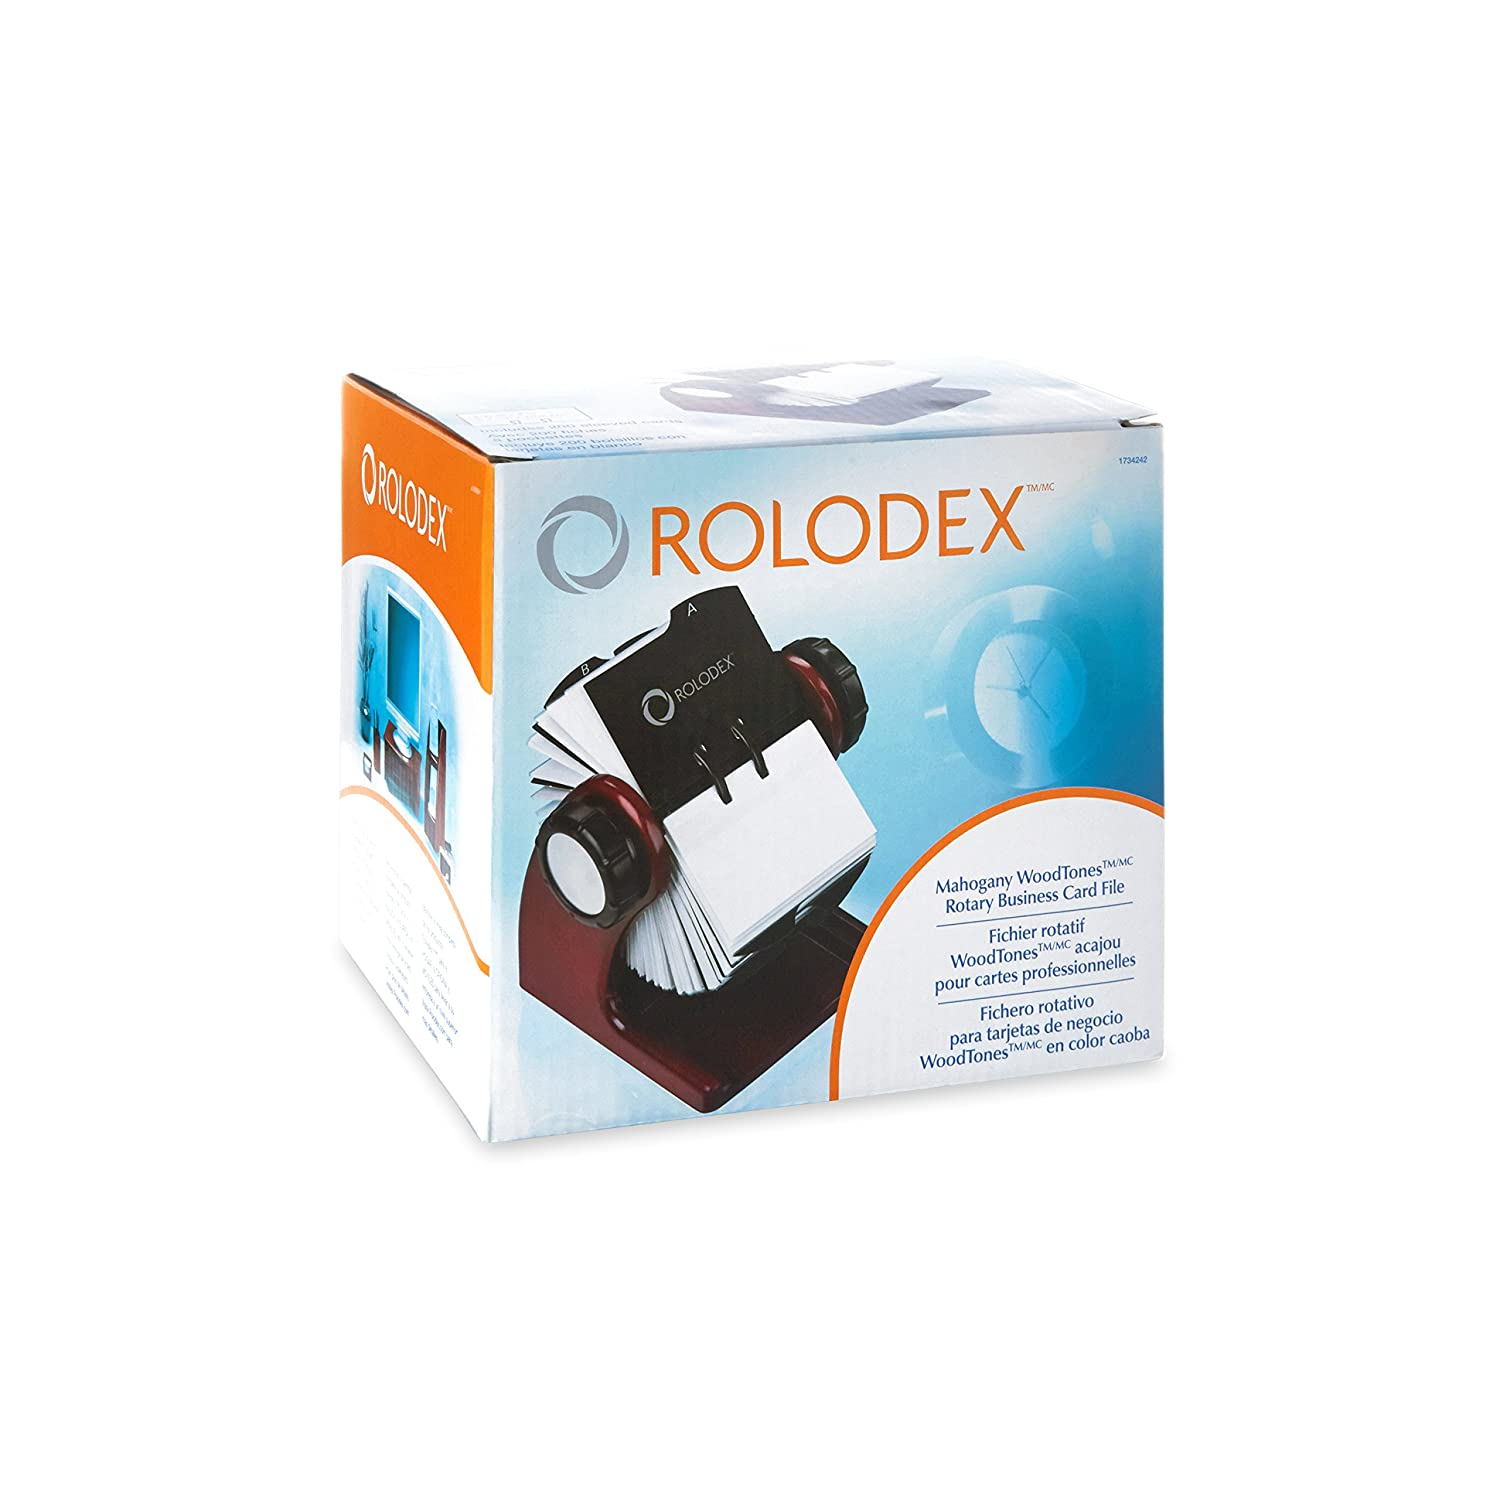 rolodex rotary file wood tones rotary business card file 400